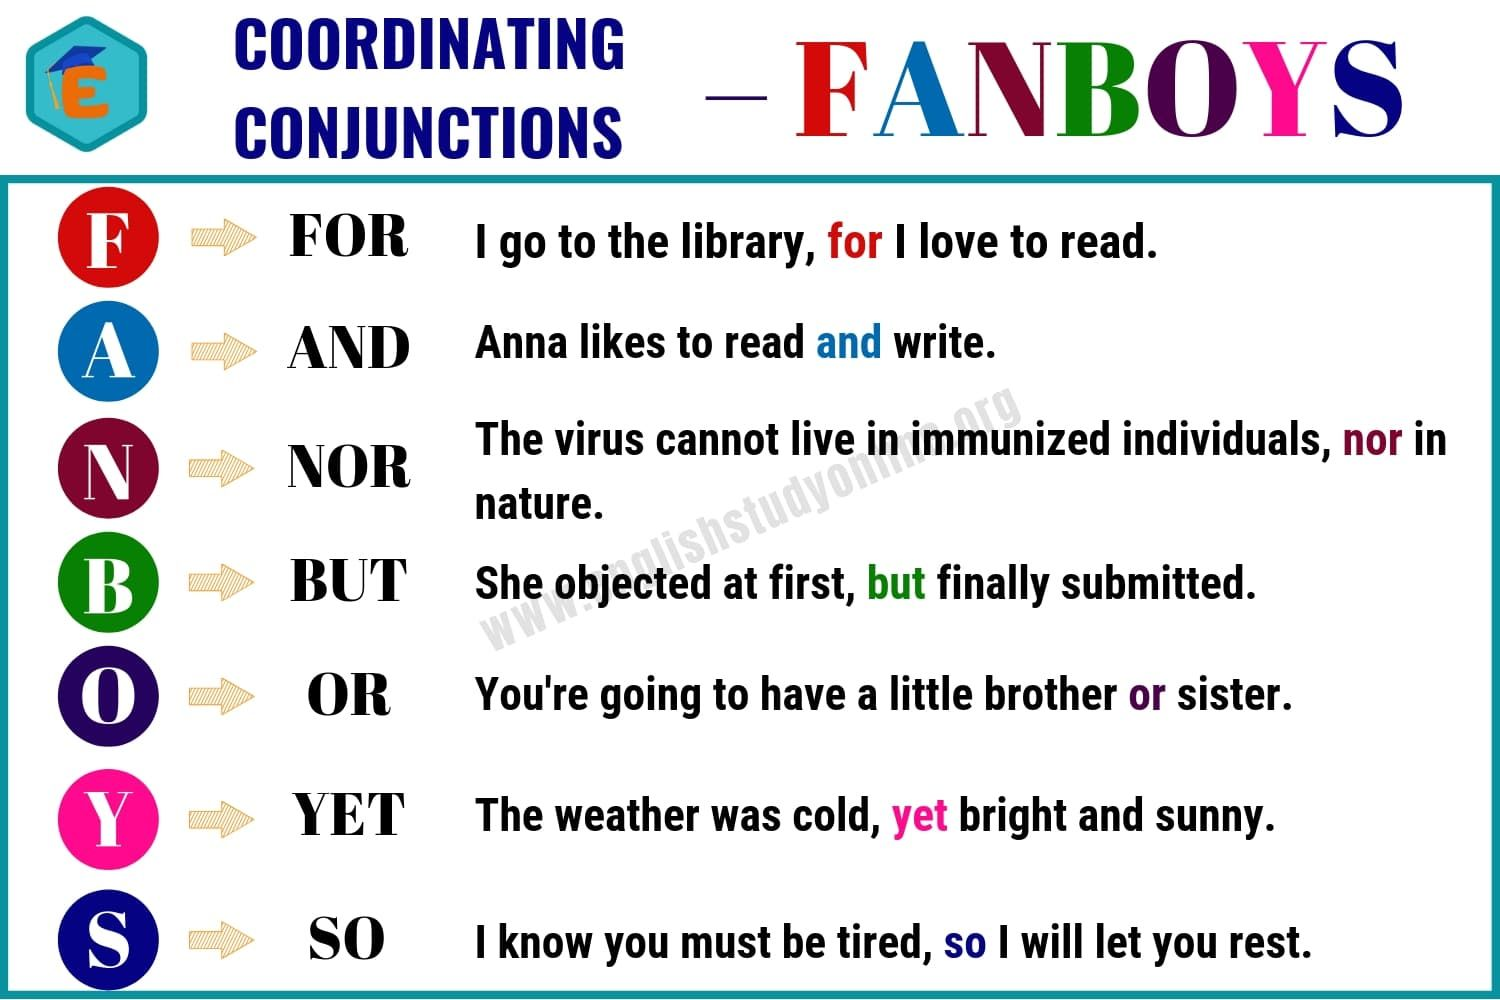 small resolution of FANBOYS - 7 Helpful Coordinating Conjunctions with Examples - English Study  Online   Coordinating conjunctions